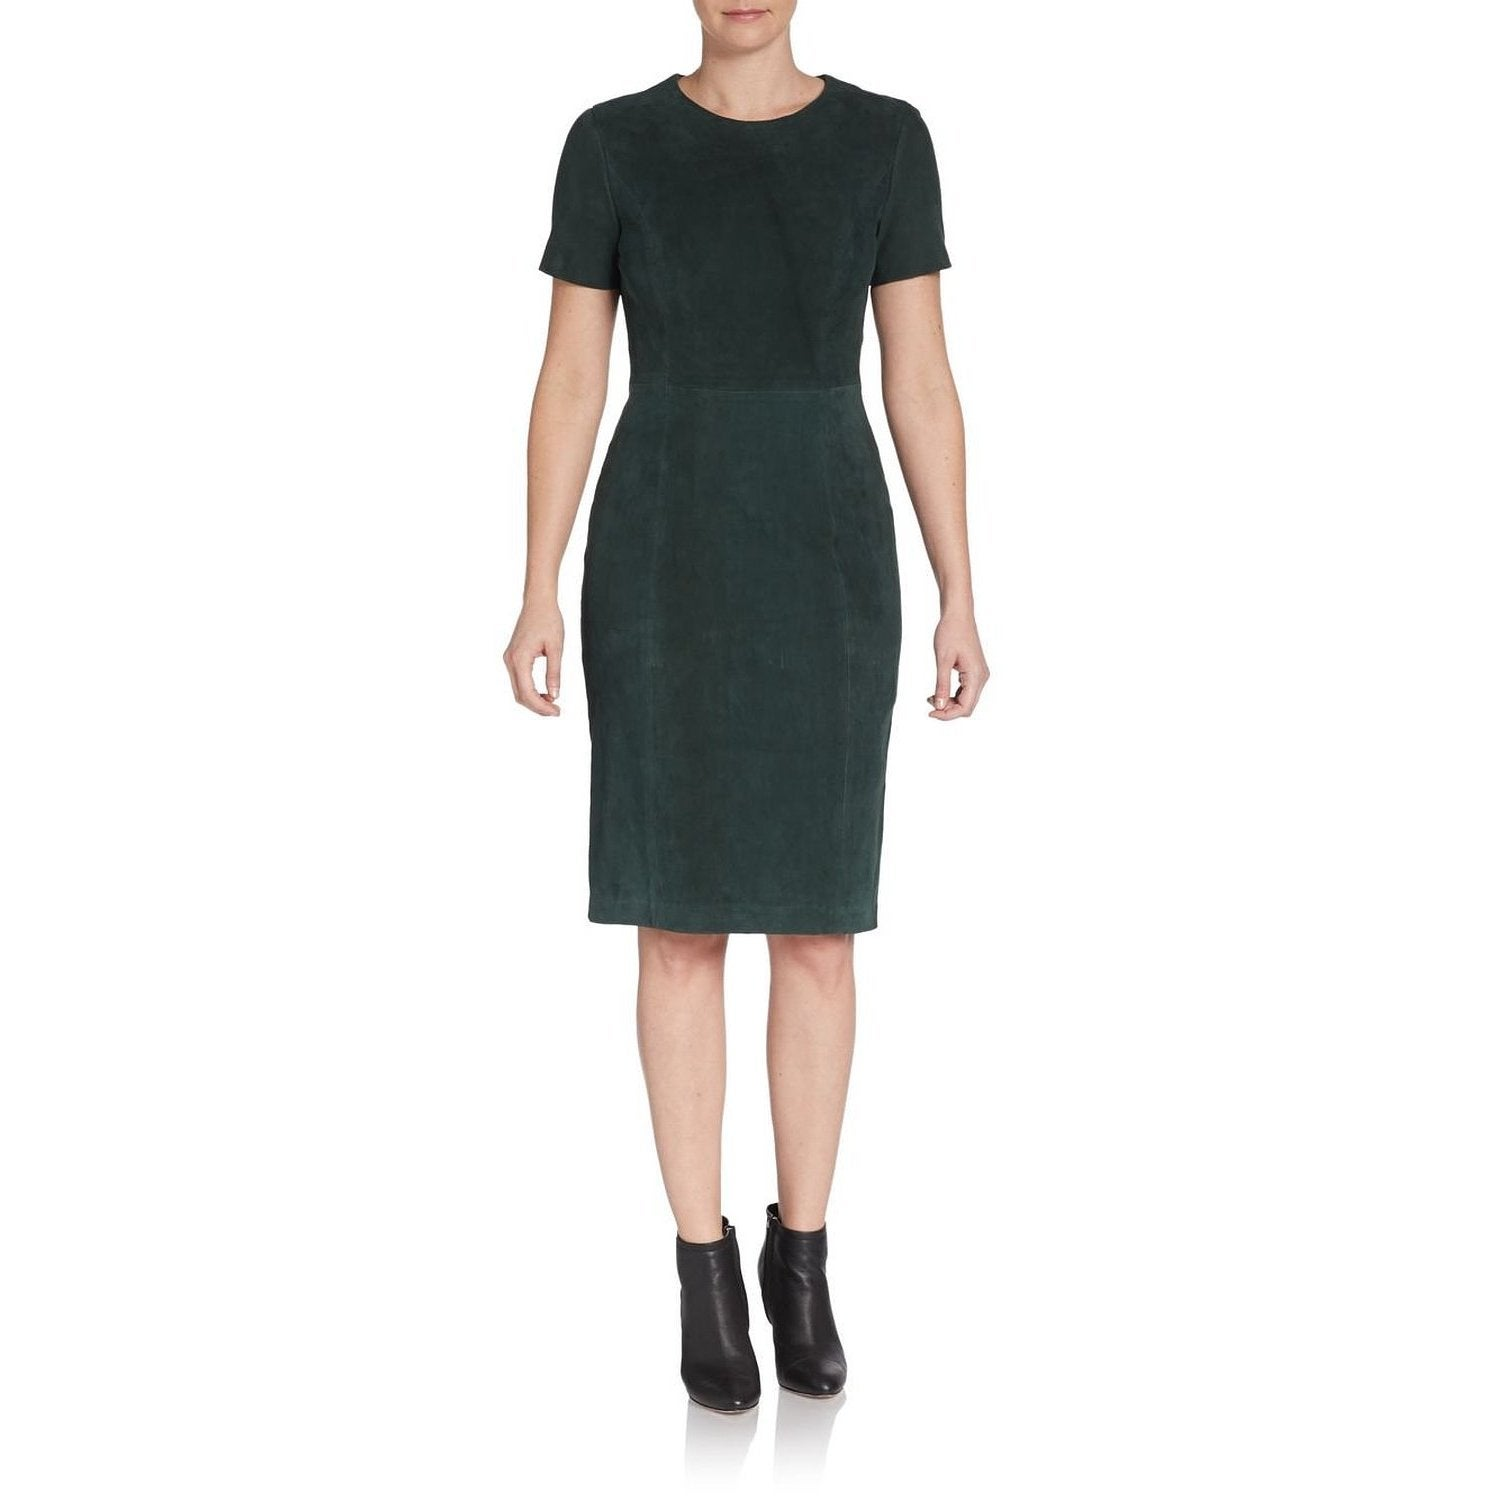 87a80954289e Shop Elie Tahari Emily Evergreen Suede Dress - Free Shipping Today -  Overstock - 11624889